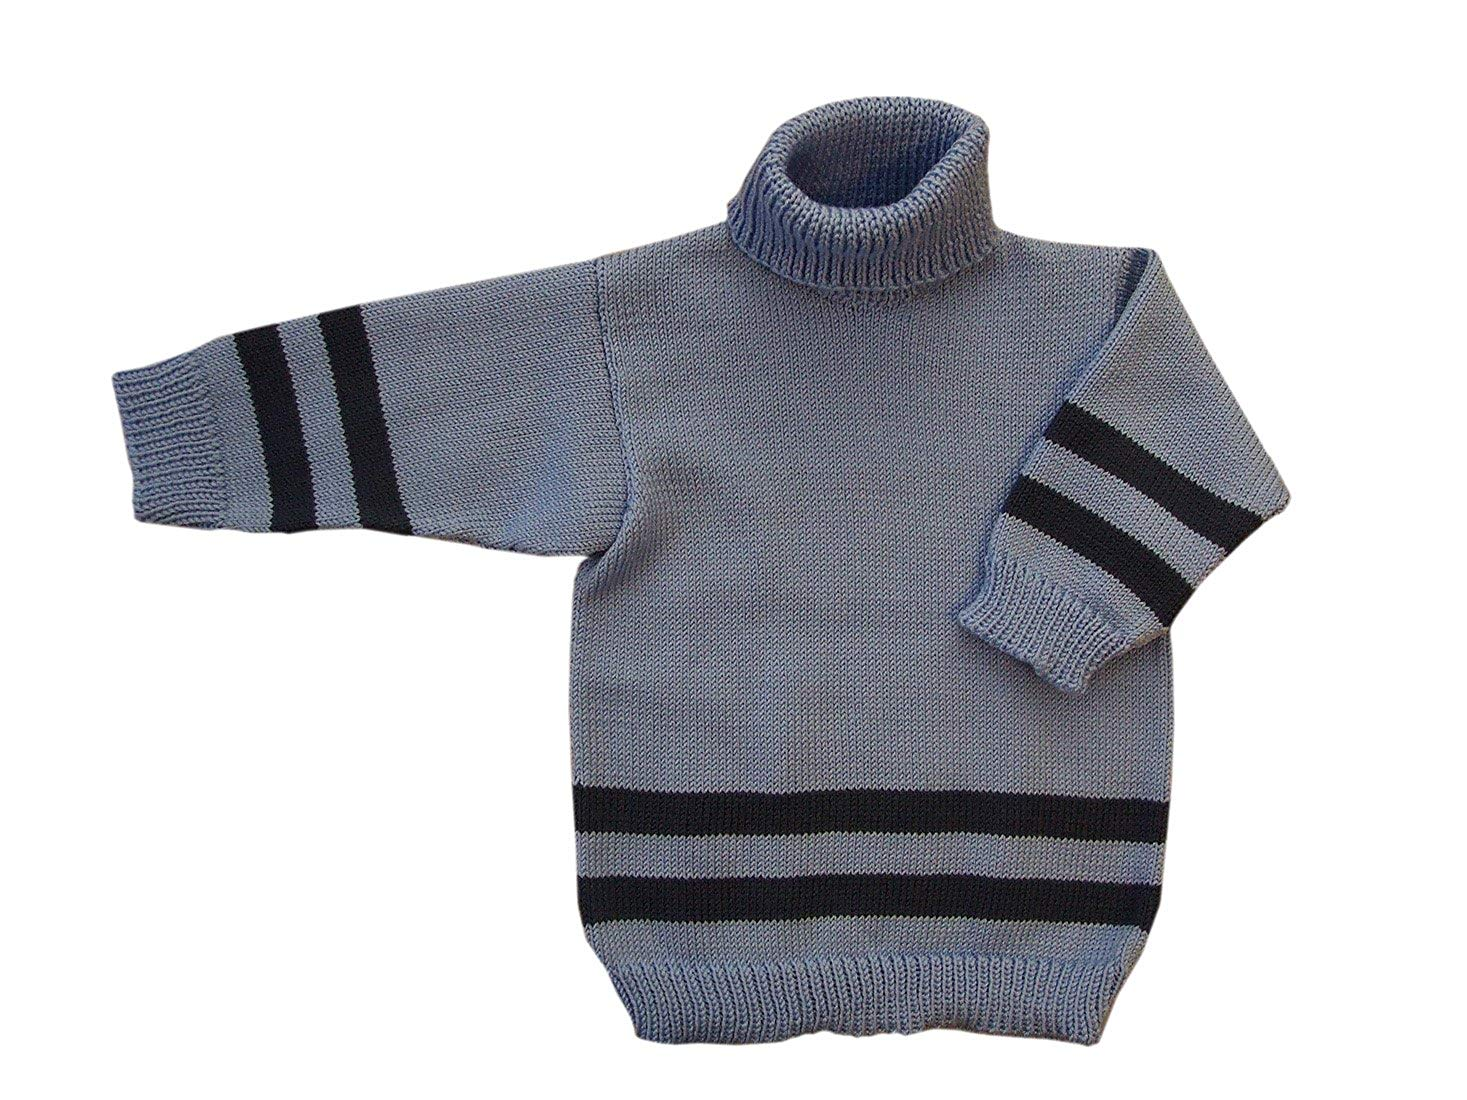 78f6111caee Get Quotations · Merino Wool Knitted Polo Neck Sweater Turtleneck